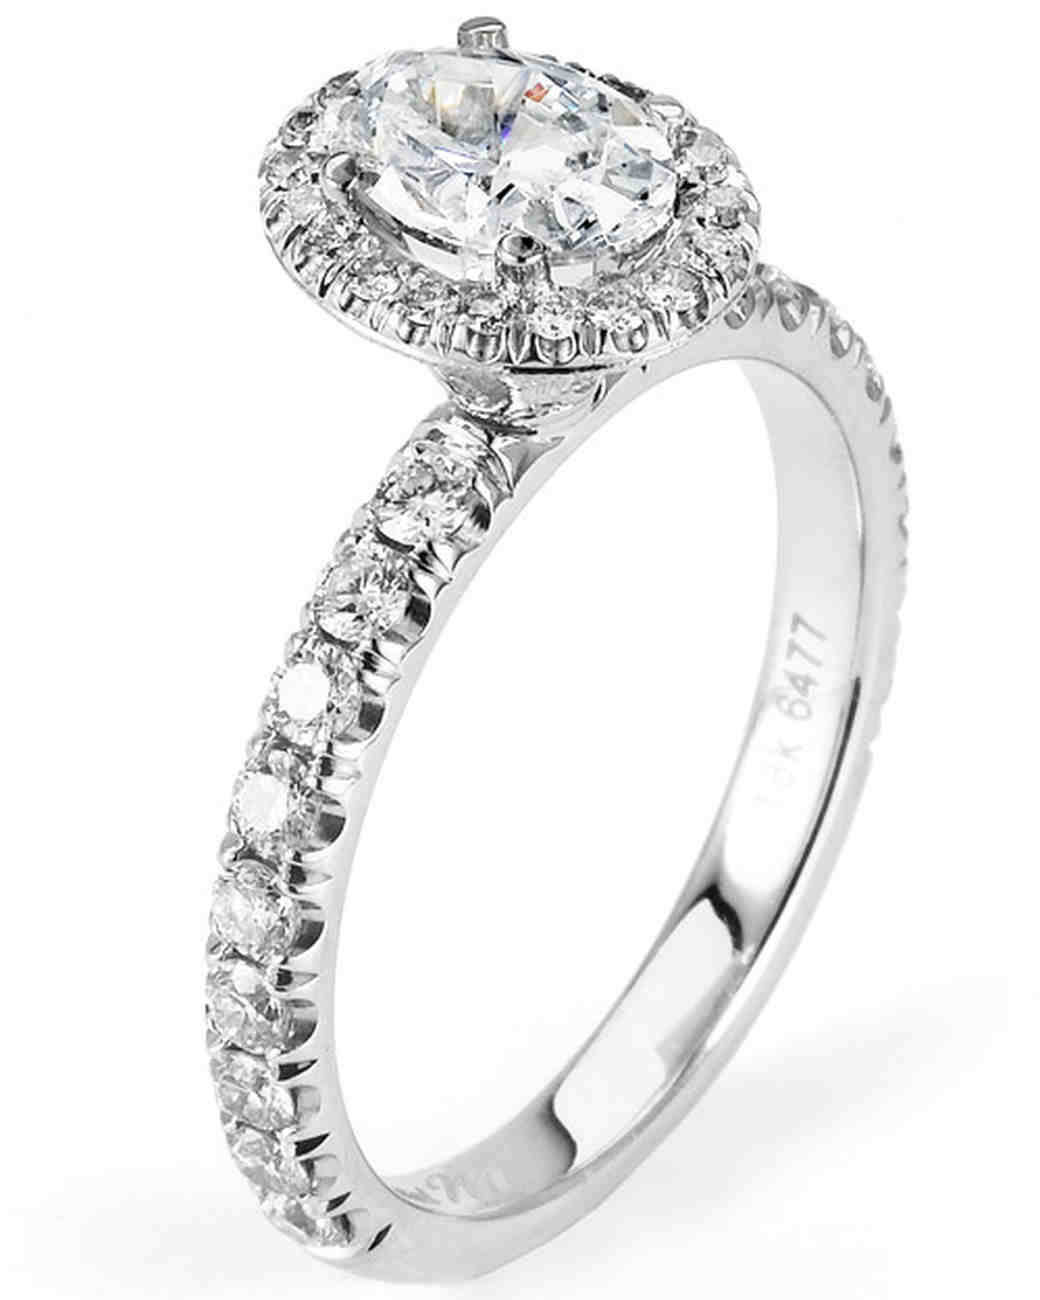 Michael M. White Gold Engagement Ring